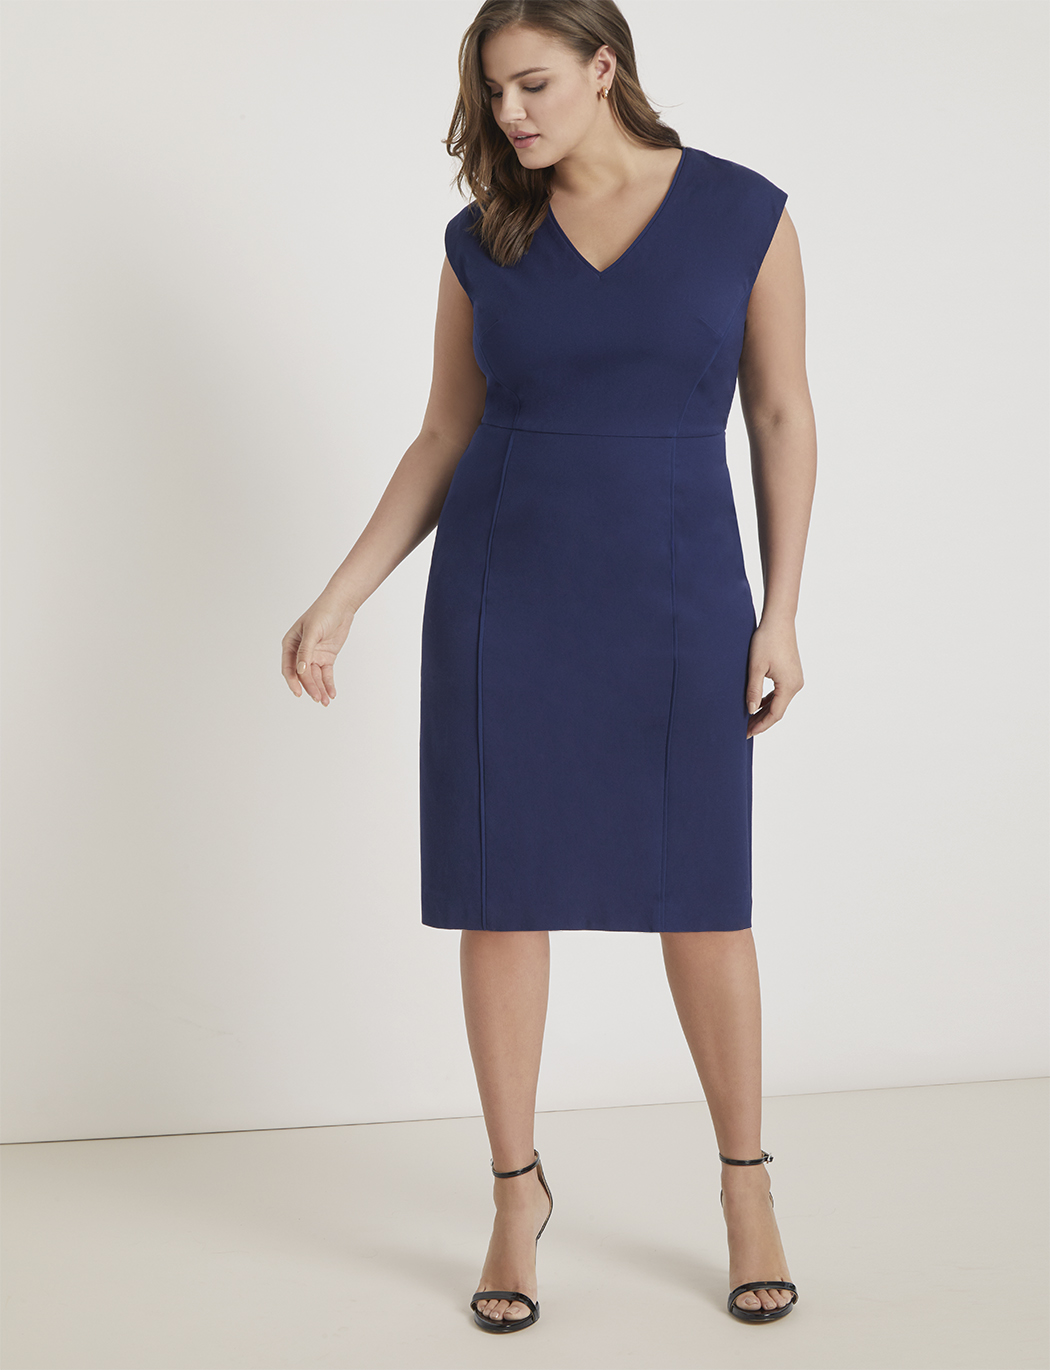 Premier Work Dress with Piping